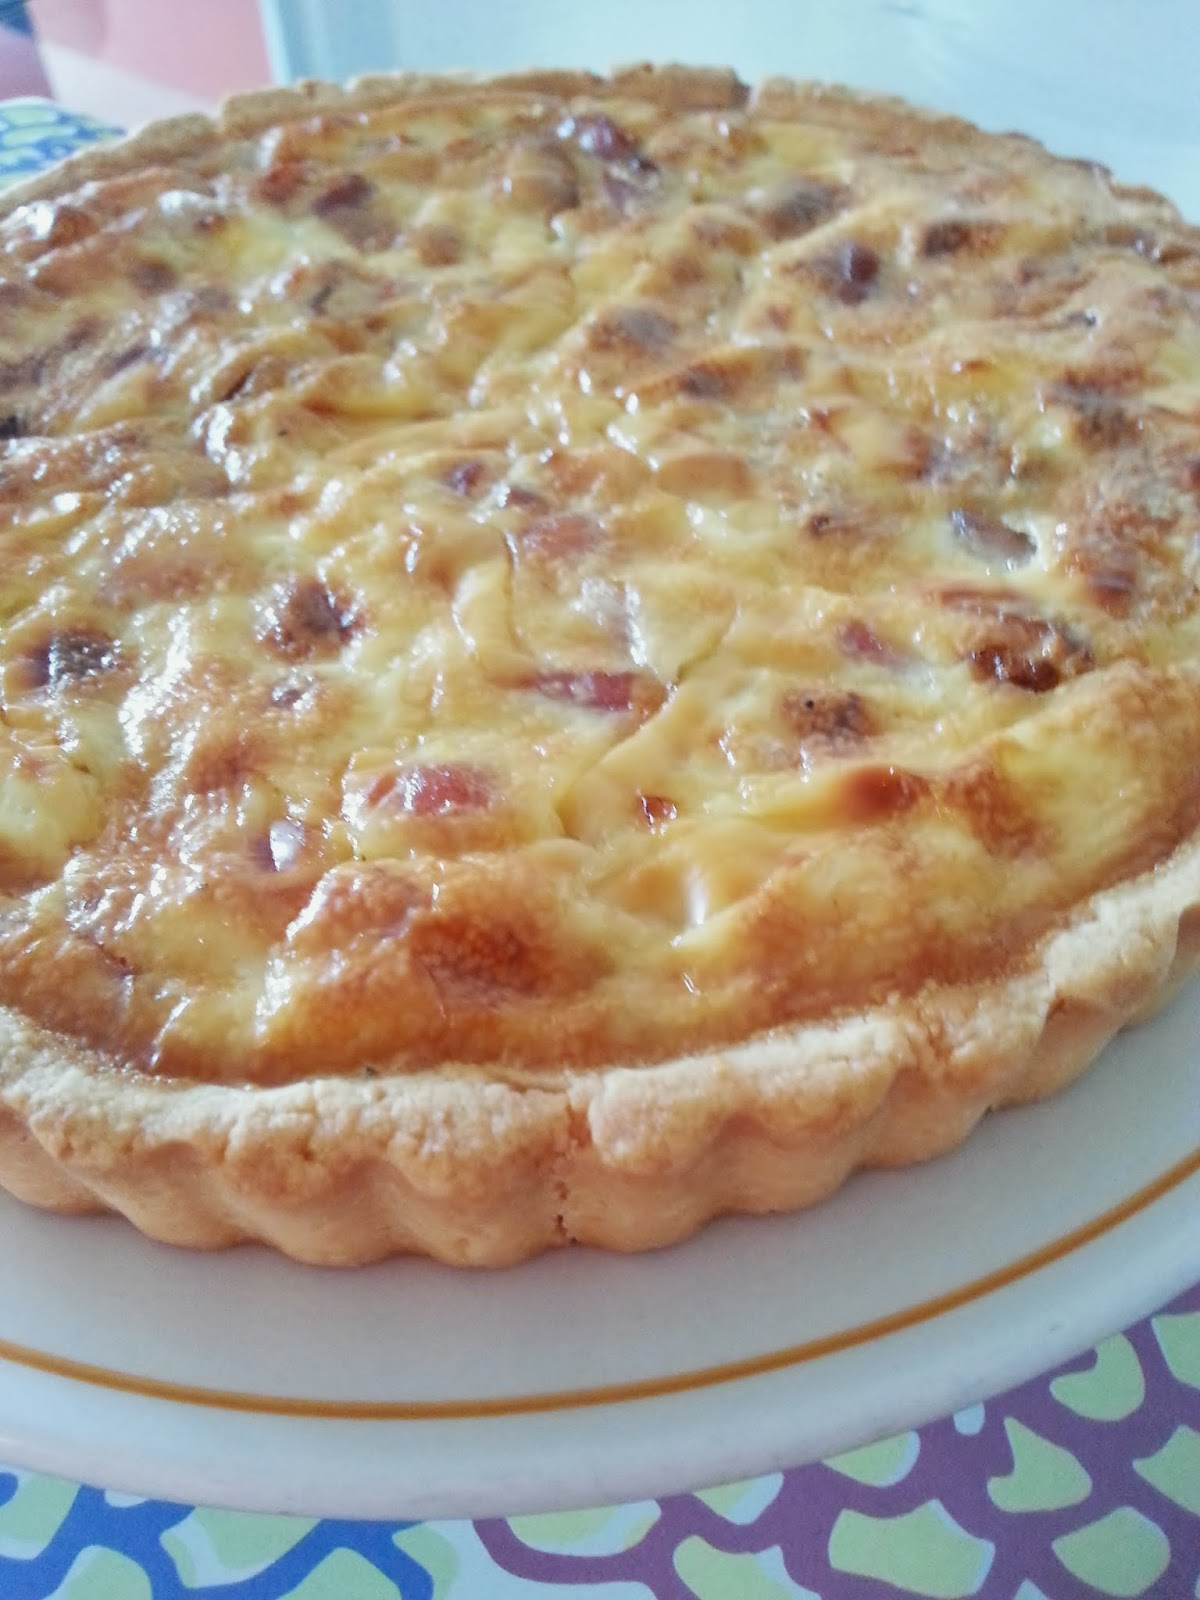 Bacon Onion Quiche Recipe |themoodkitchen